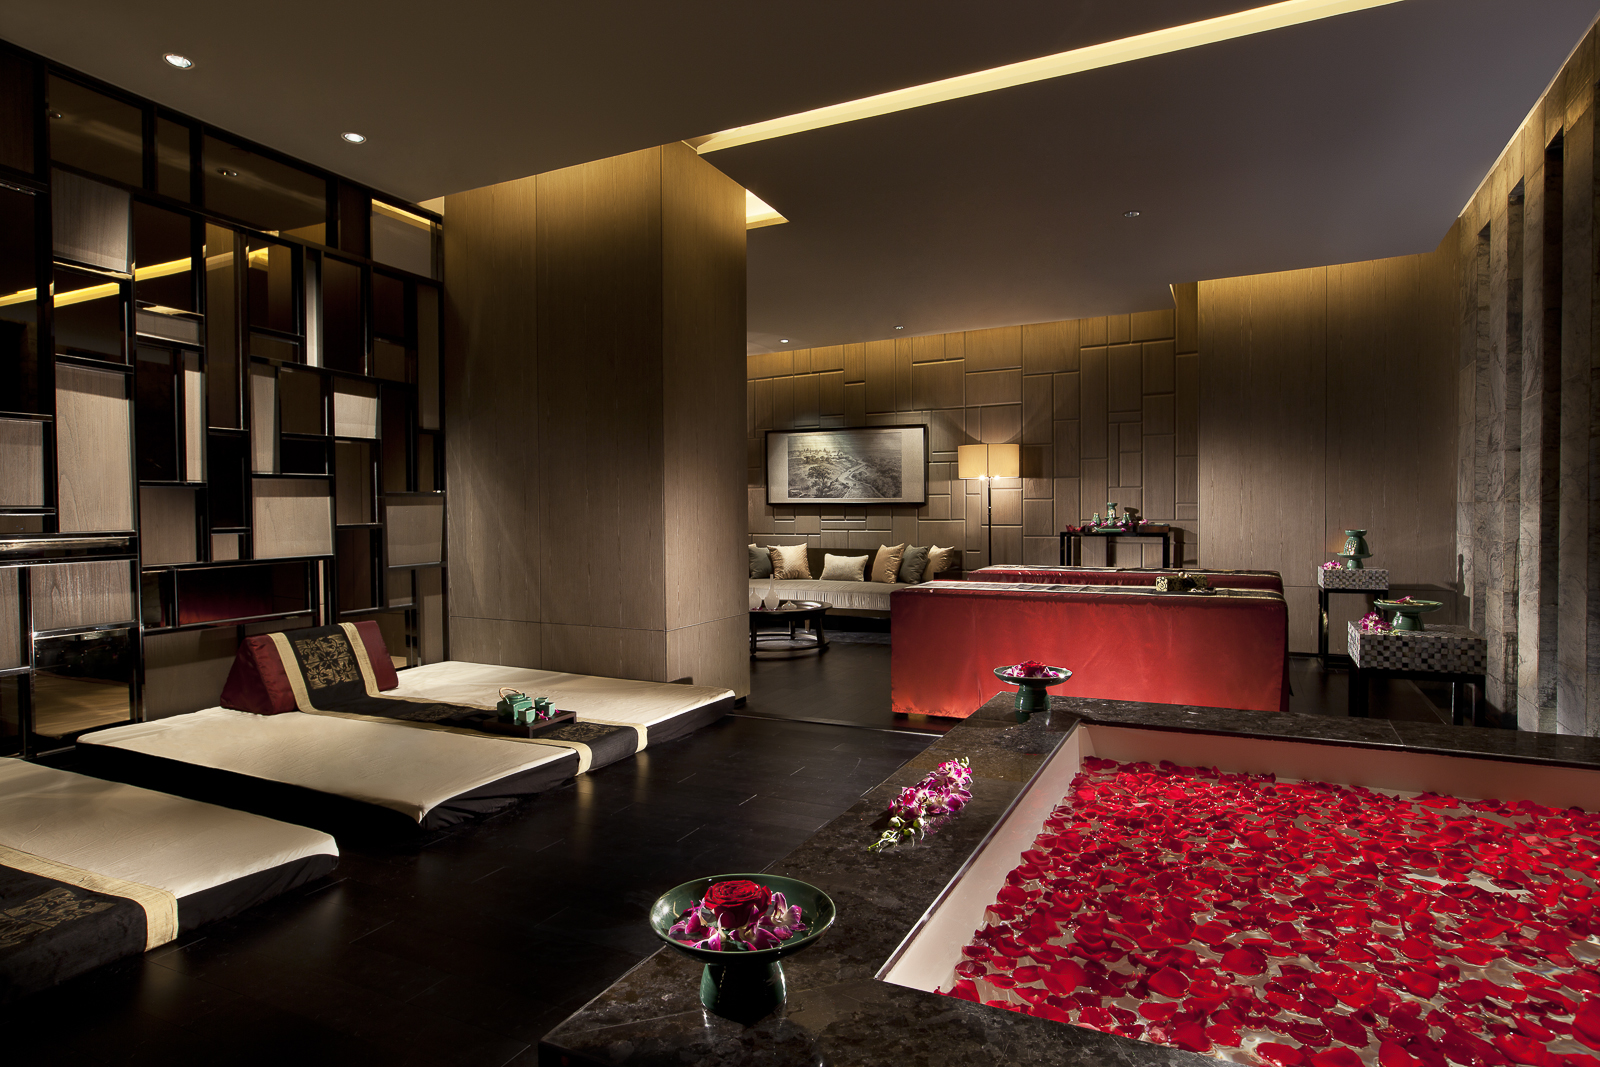 Banyan Tree Residences - Hillside Dubai - designing for wellness